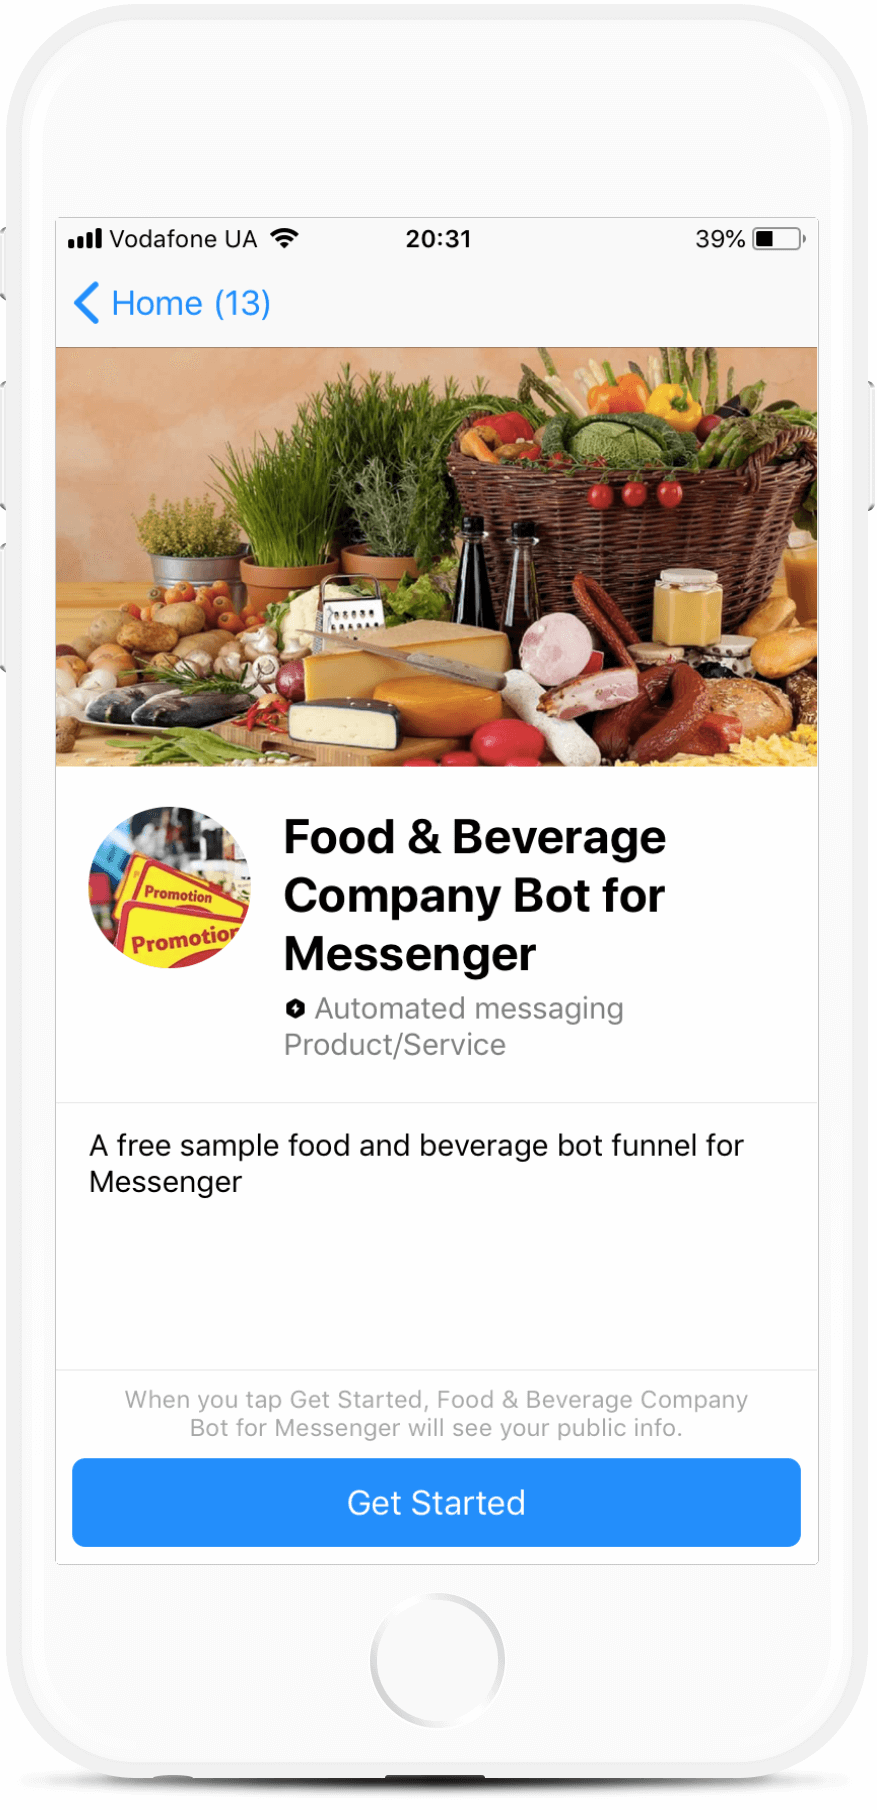 Food & Beverage Company Bot for Messenger - Botmakers